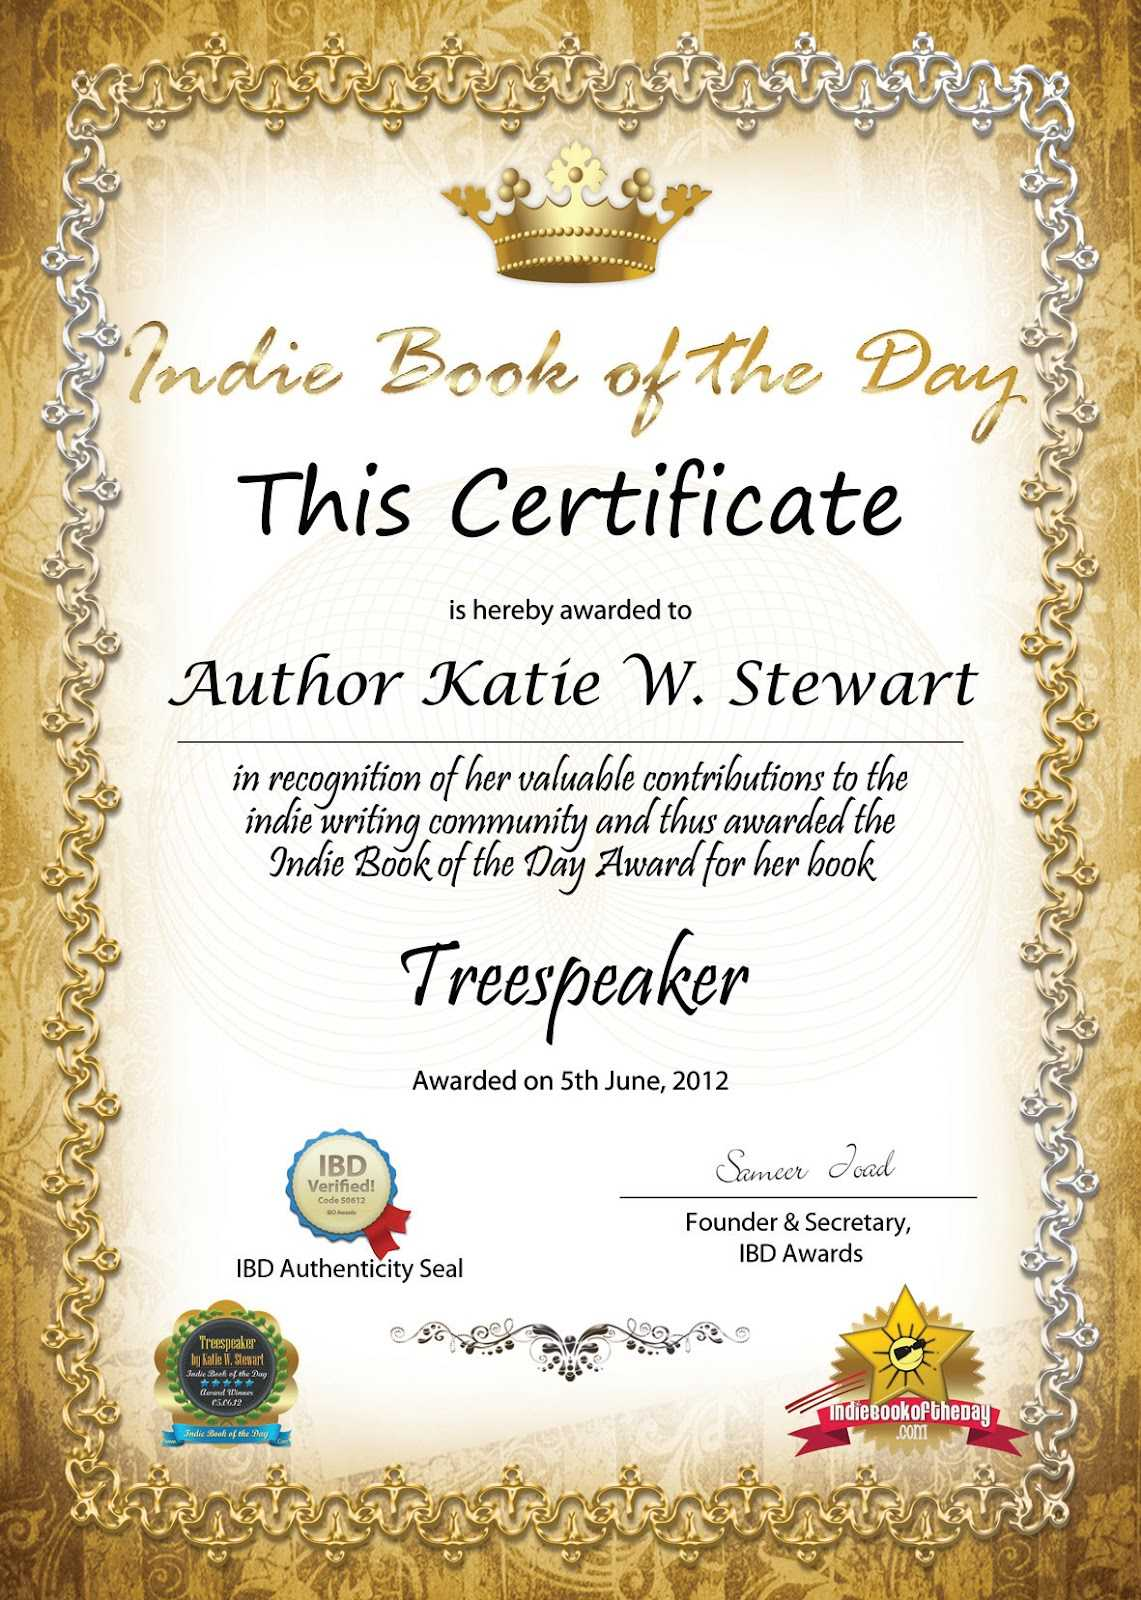 Small Certificate Template ] - Free Gift Certificate In Small Certificate Template